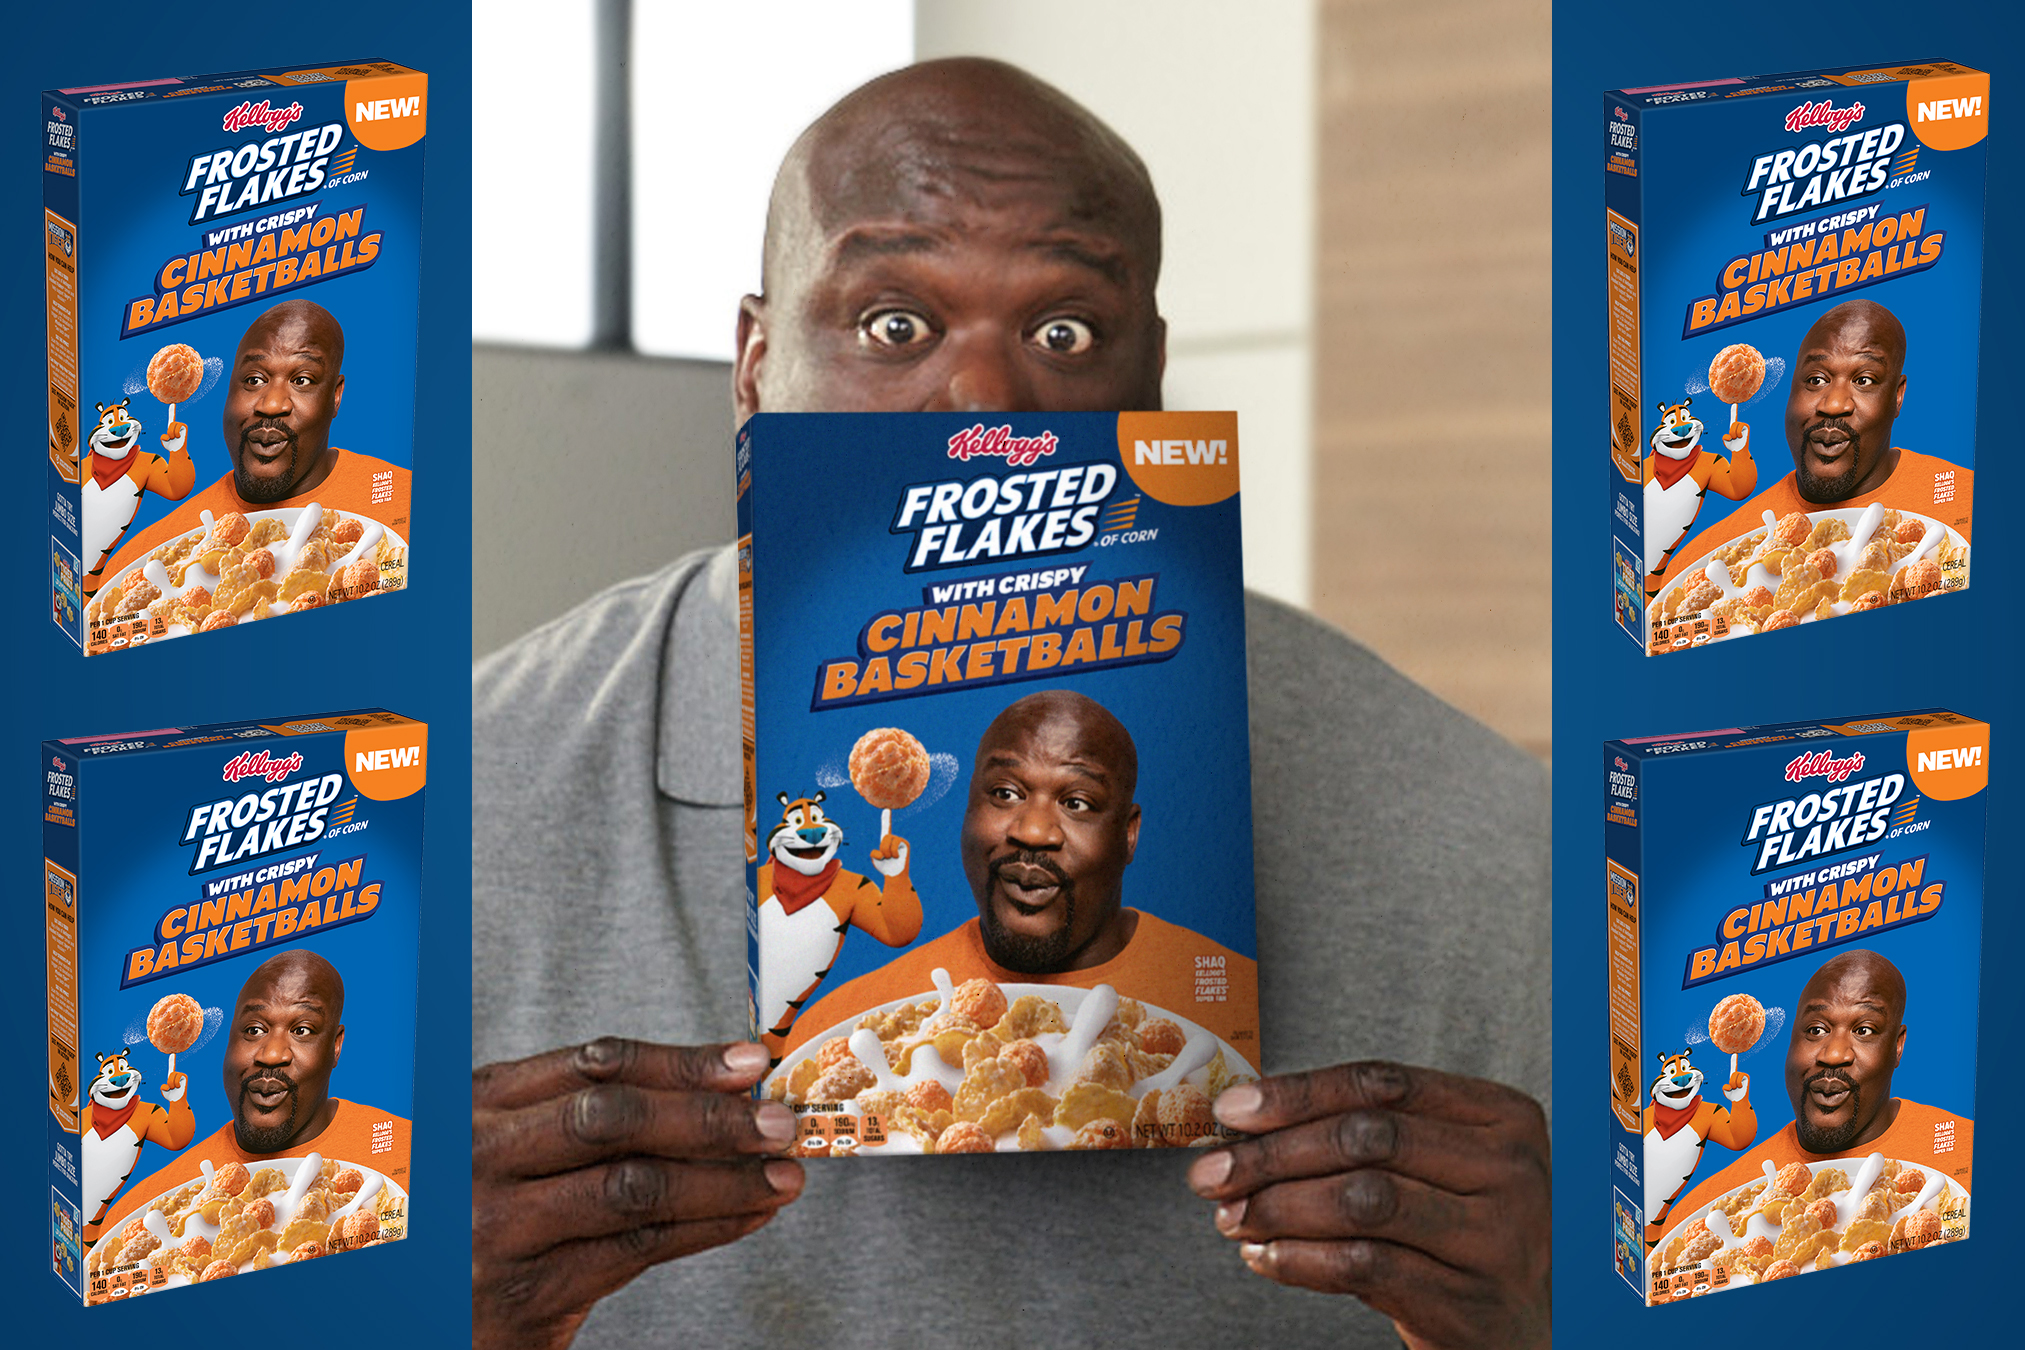 Shaq stands in for Tony the Tiger and Kendall Jenner gets into tequila biz